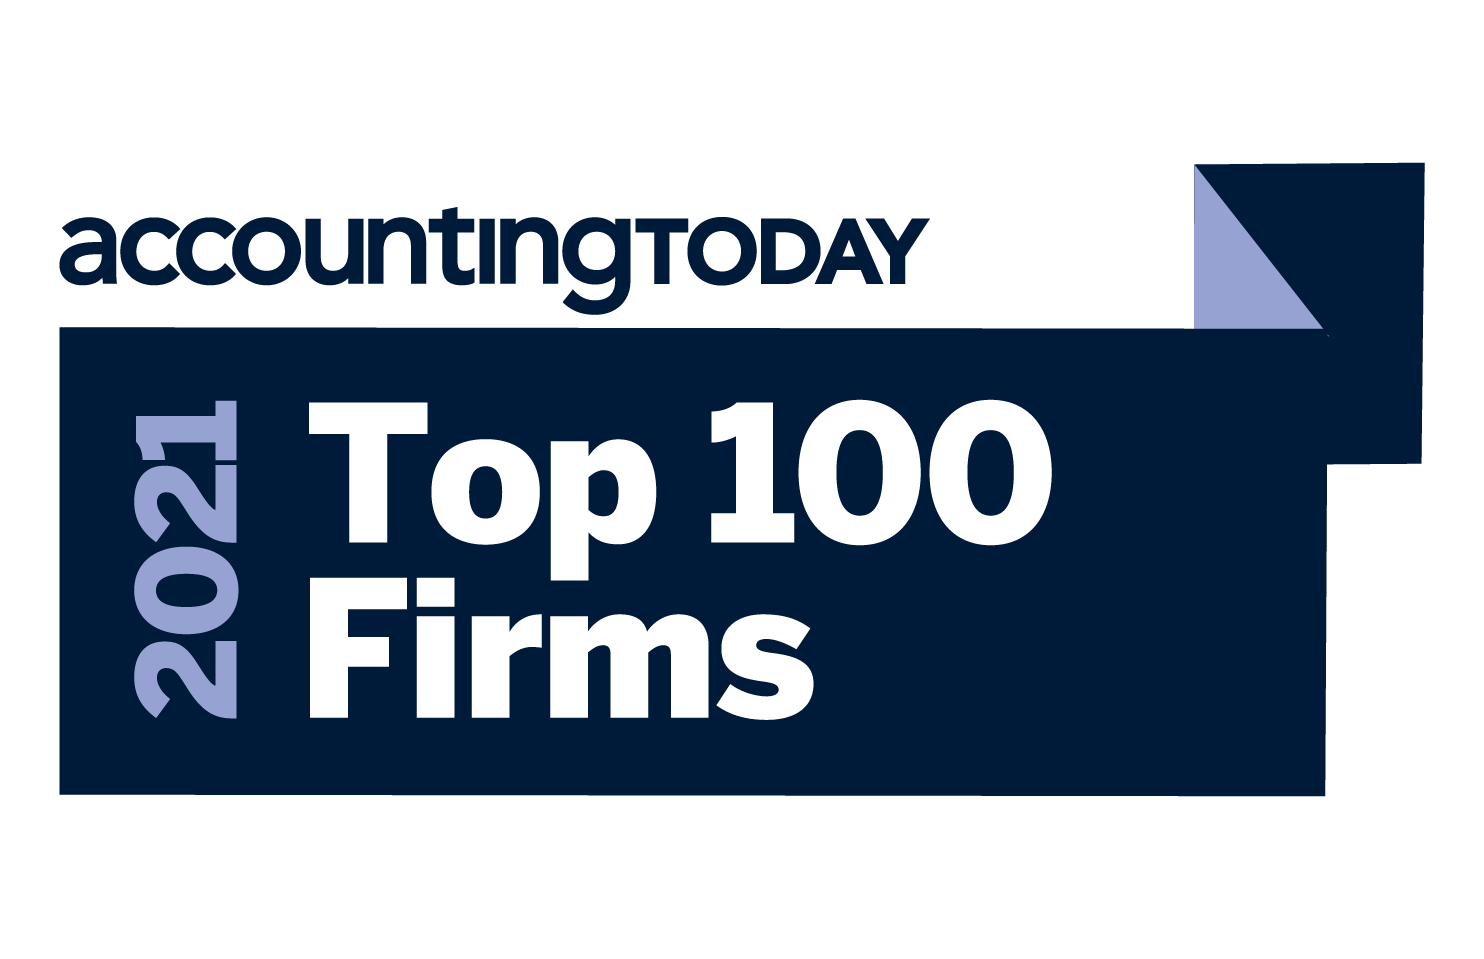 AccountingToday 2021 Top 100 Firms